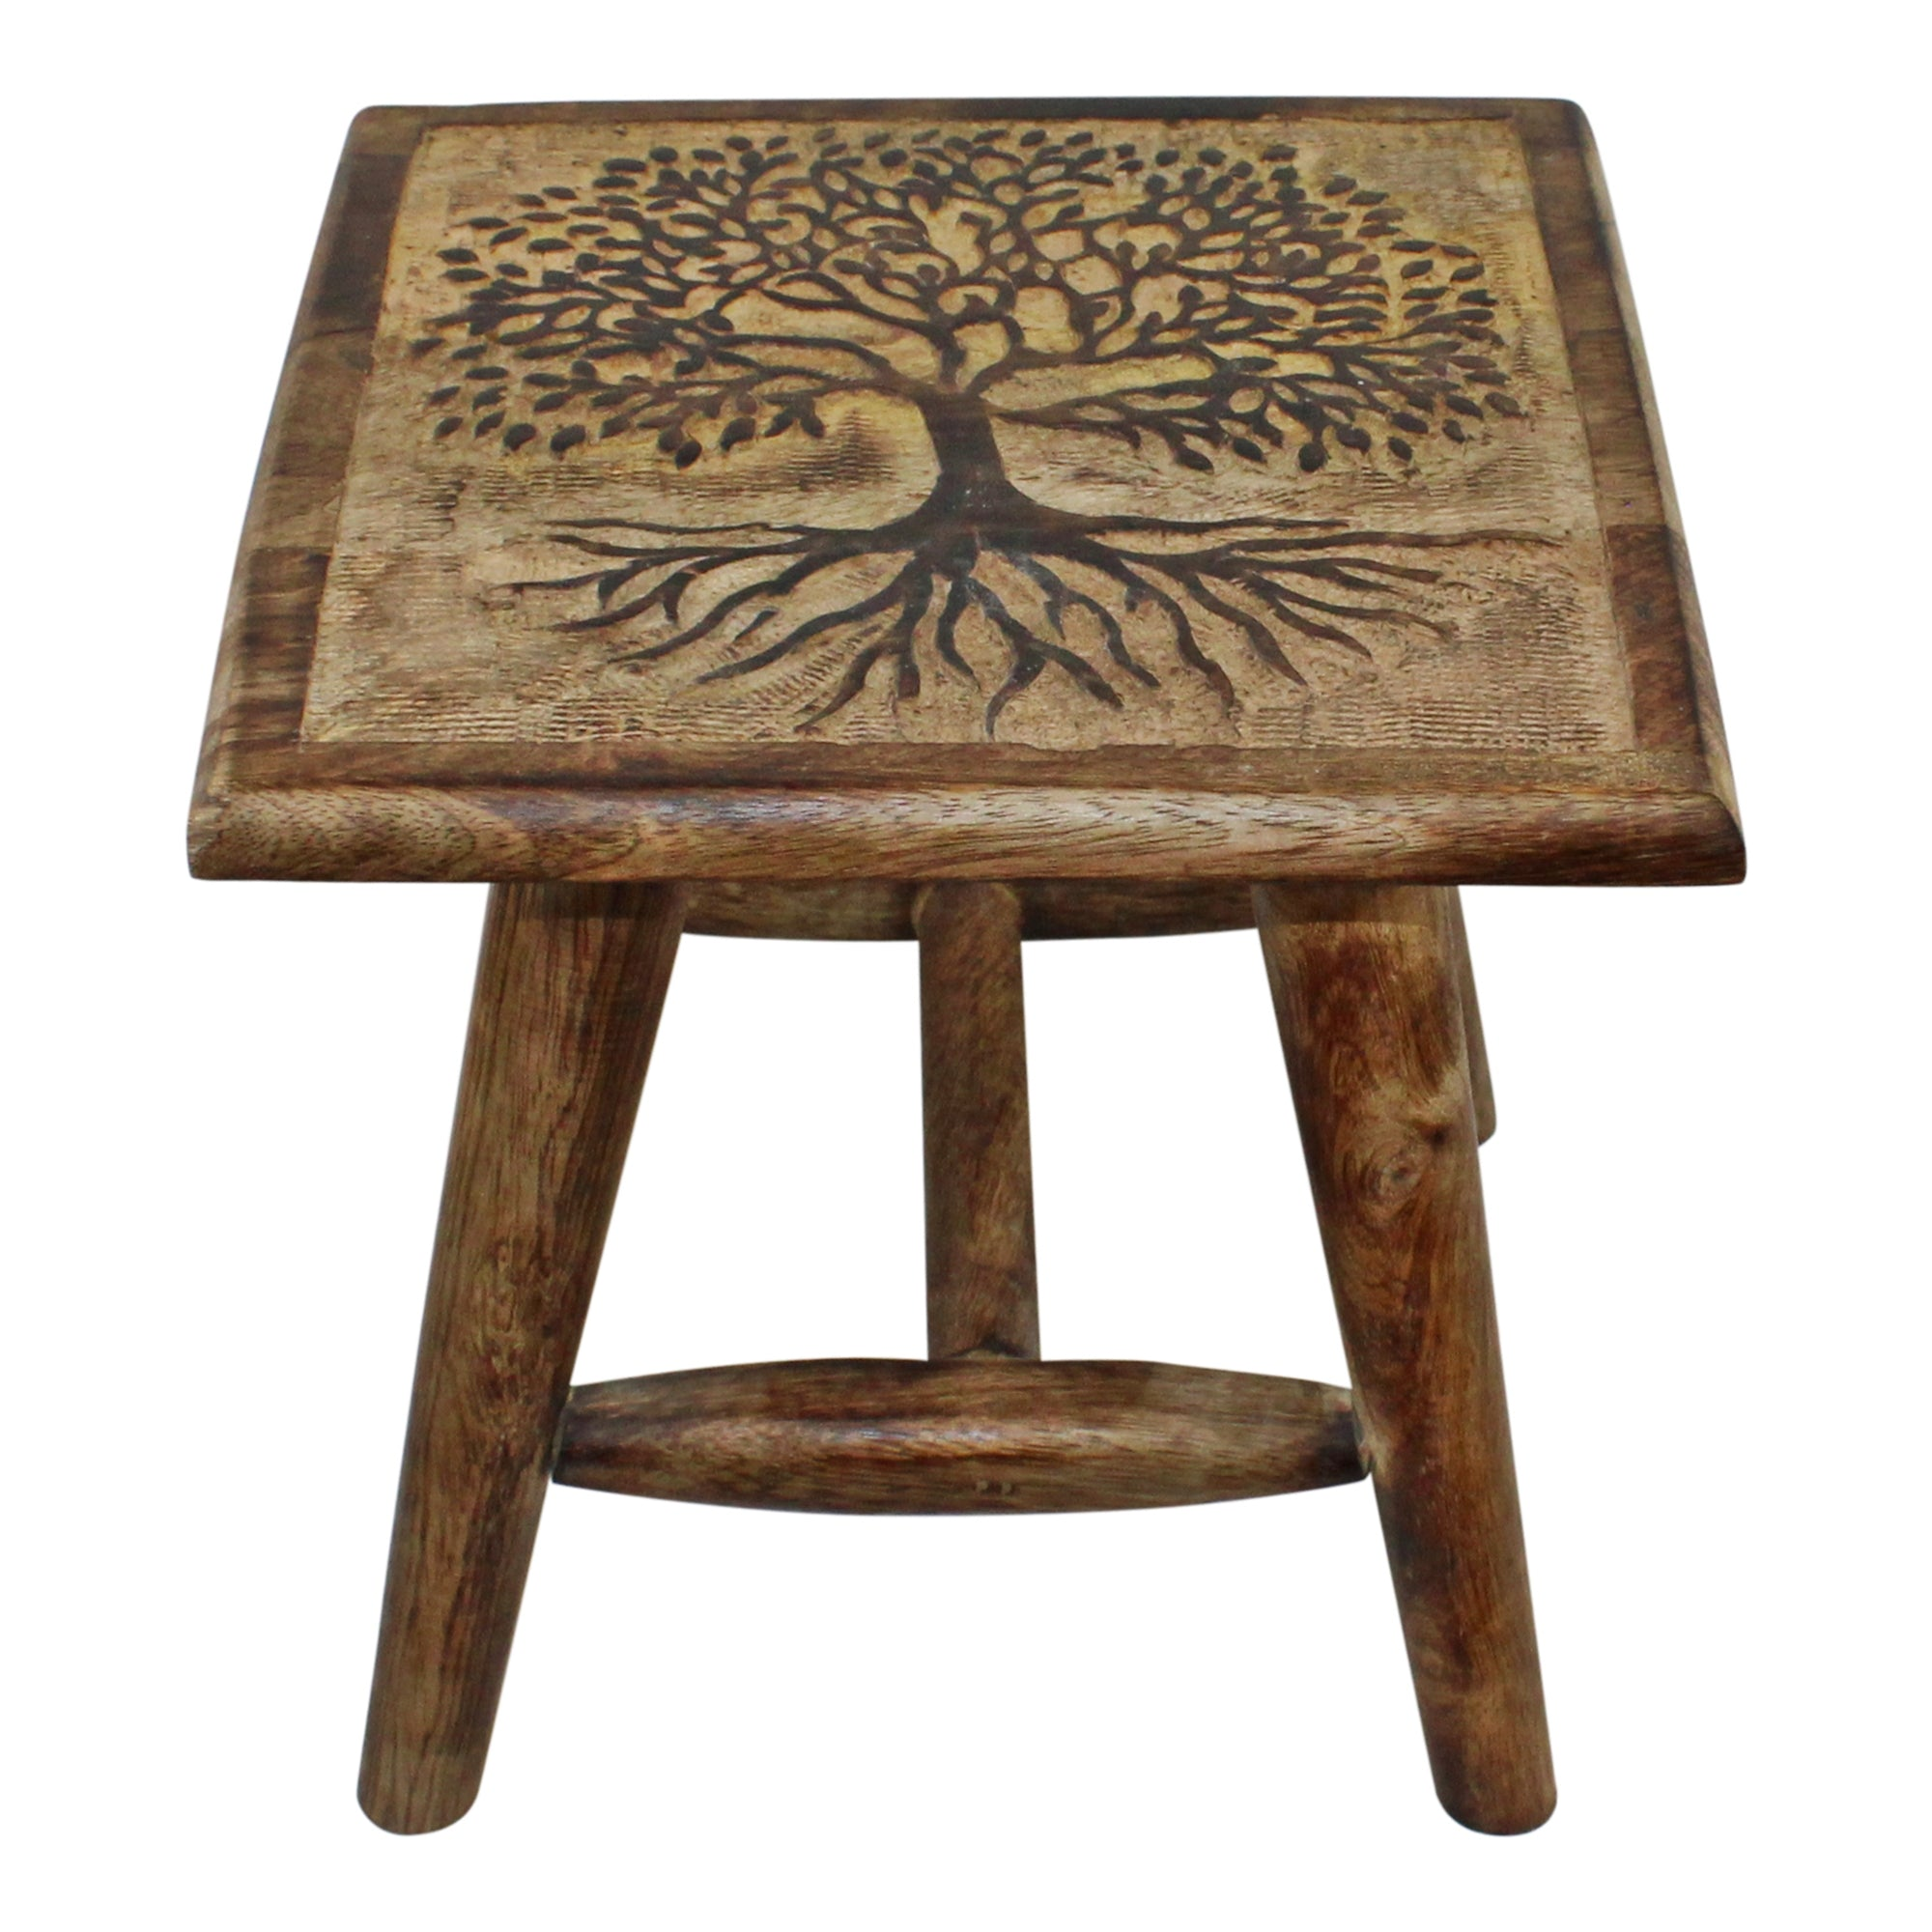 Tree of Life Hand Carved Stool, 25cm, Furniture by Low Cost Gifts